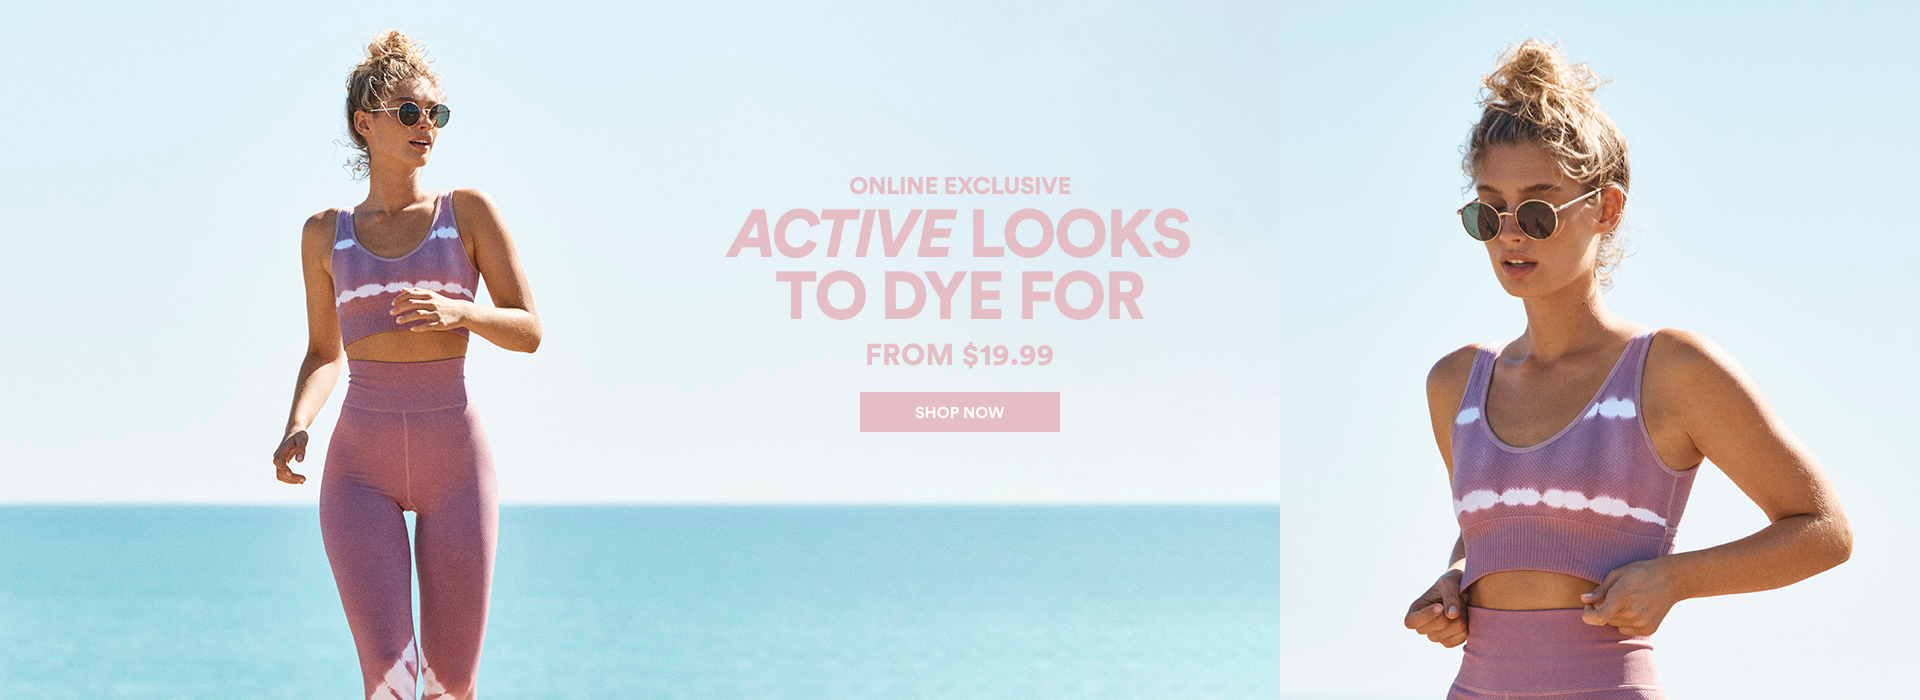 Online Exclusive. Active Looks To Dye For. From $19.99. Click to Shop.